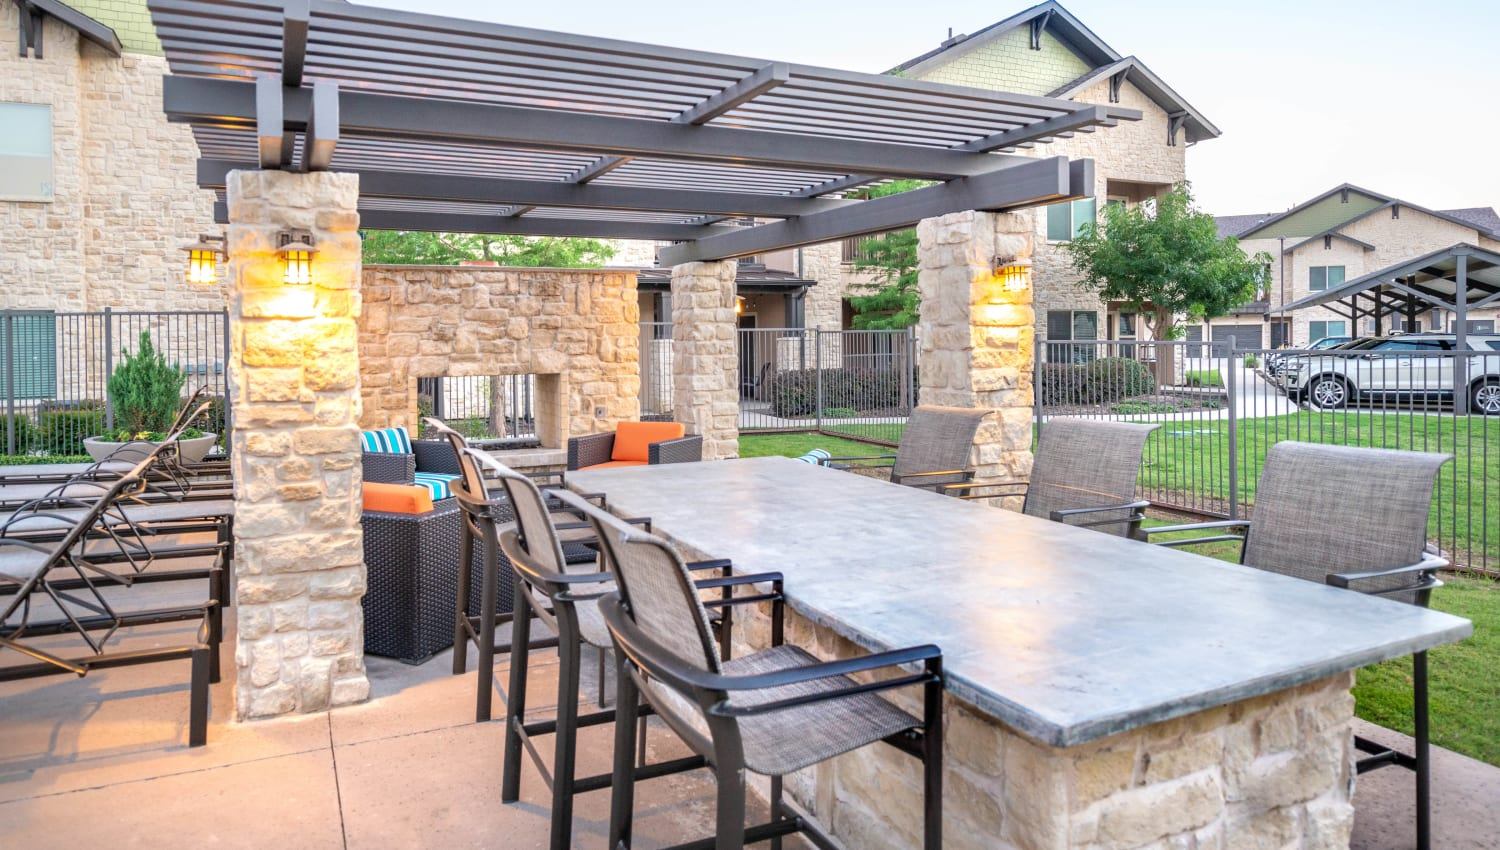 Bar seating at the barbecue area at Olympus Waterford in Keller, Texas